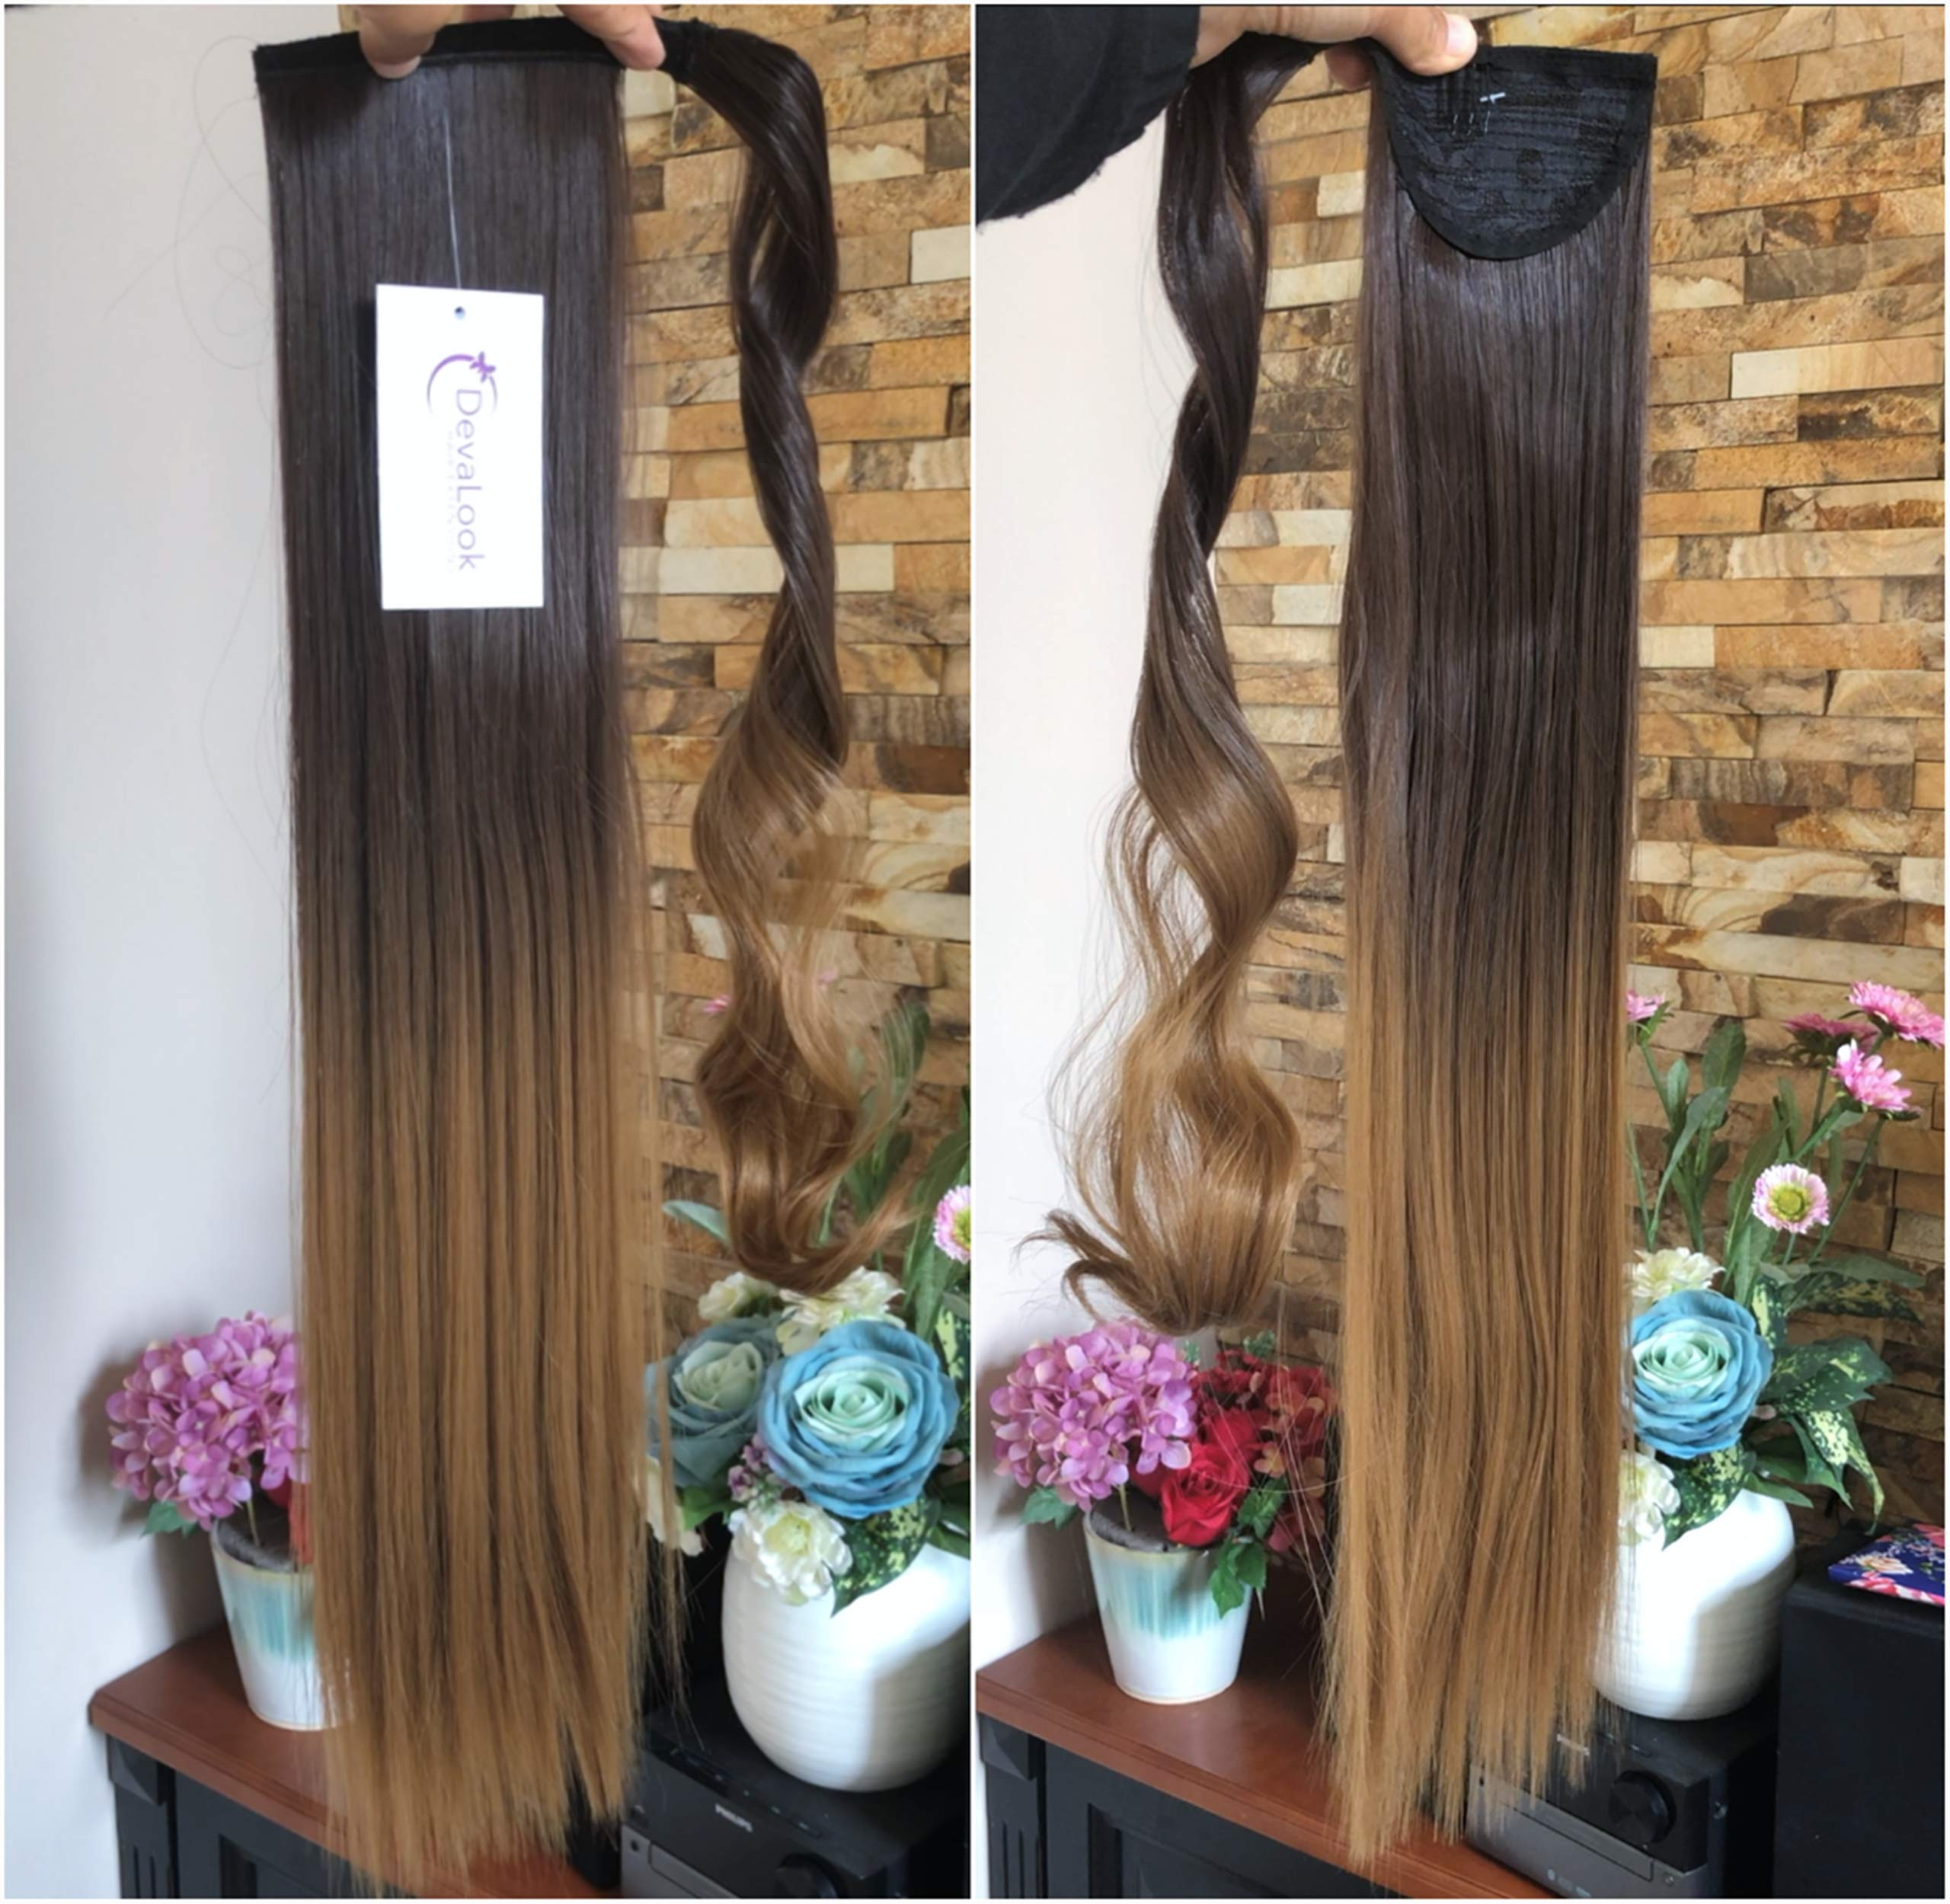 20'' 22'' Long One Piece Straight Curly Wavy Clip in Wrap around Ombre Ponytail Hairpieces (22'' Straight-Dark brown to dark blonde) by DevaLook Hair Extension